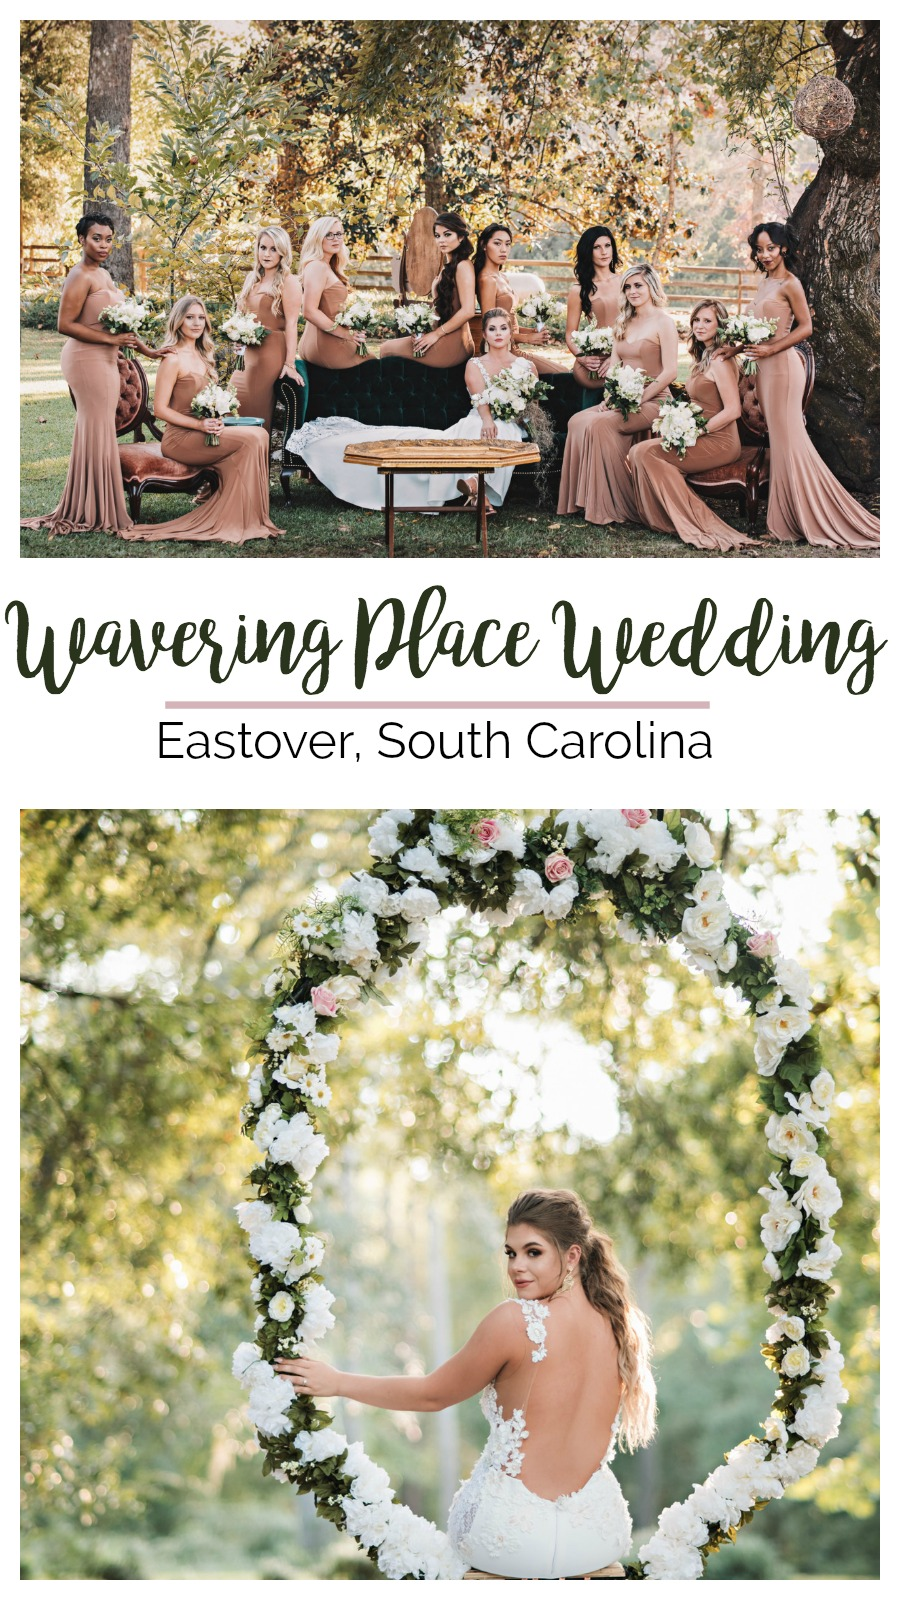 Heather and Tyler: Fun-loving Outdoor Wedding at Wavering Place, Columbia, South Carolina | Palmetto State Weddings | Russell-Killen Photography | where to get married in Columbia | historic Southern plantation wedding